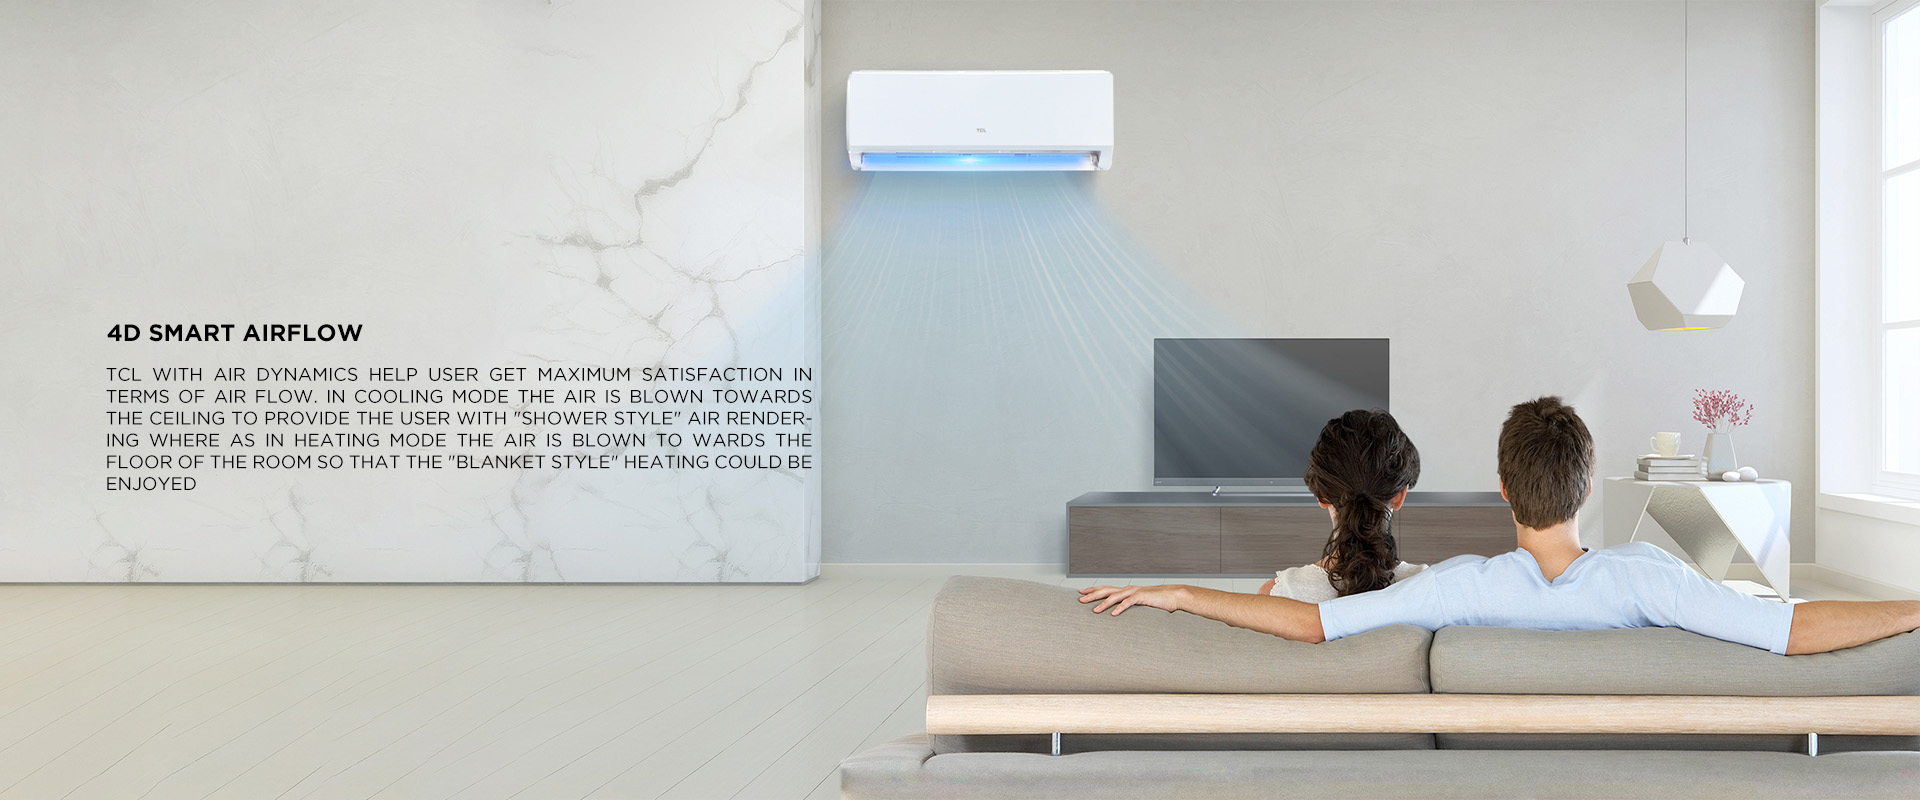 TCL with air dynamics help user get maximum satisfaction in terms of air flow. In Cooling mode the air is blown towards the ceiling to provide the user with (Shower style) air rendering where as in Heating mode the air is blown to wards the floor of the room so that the (Blanket style) heating could be enjoyed